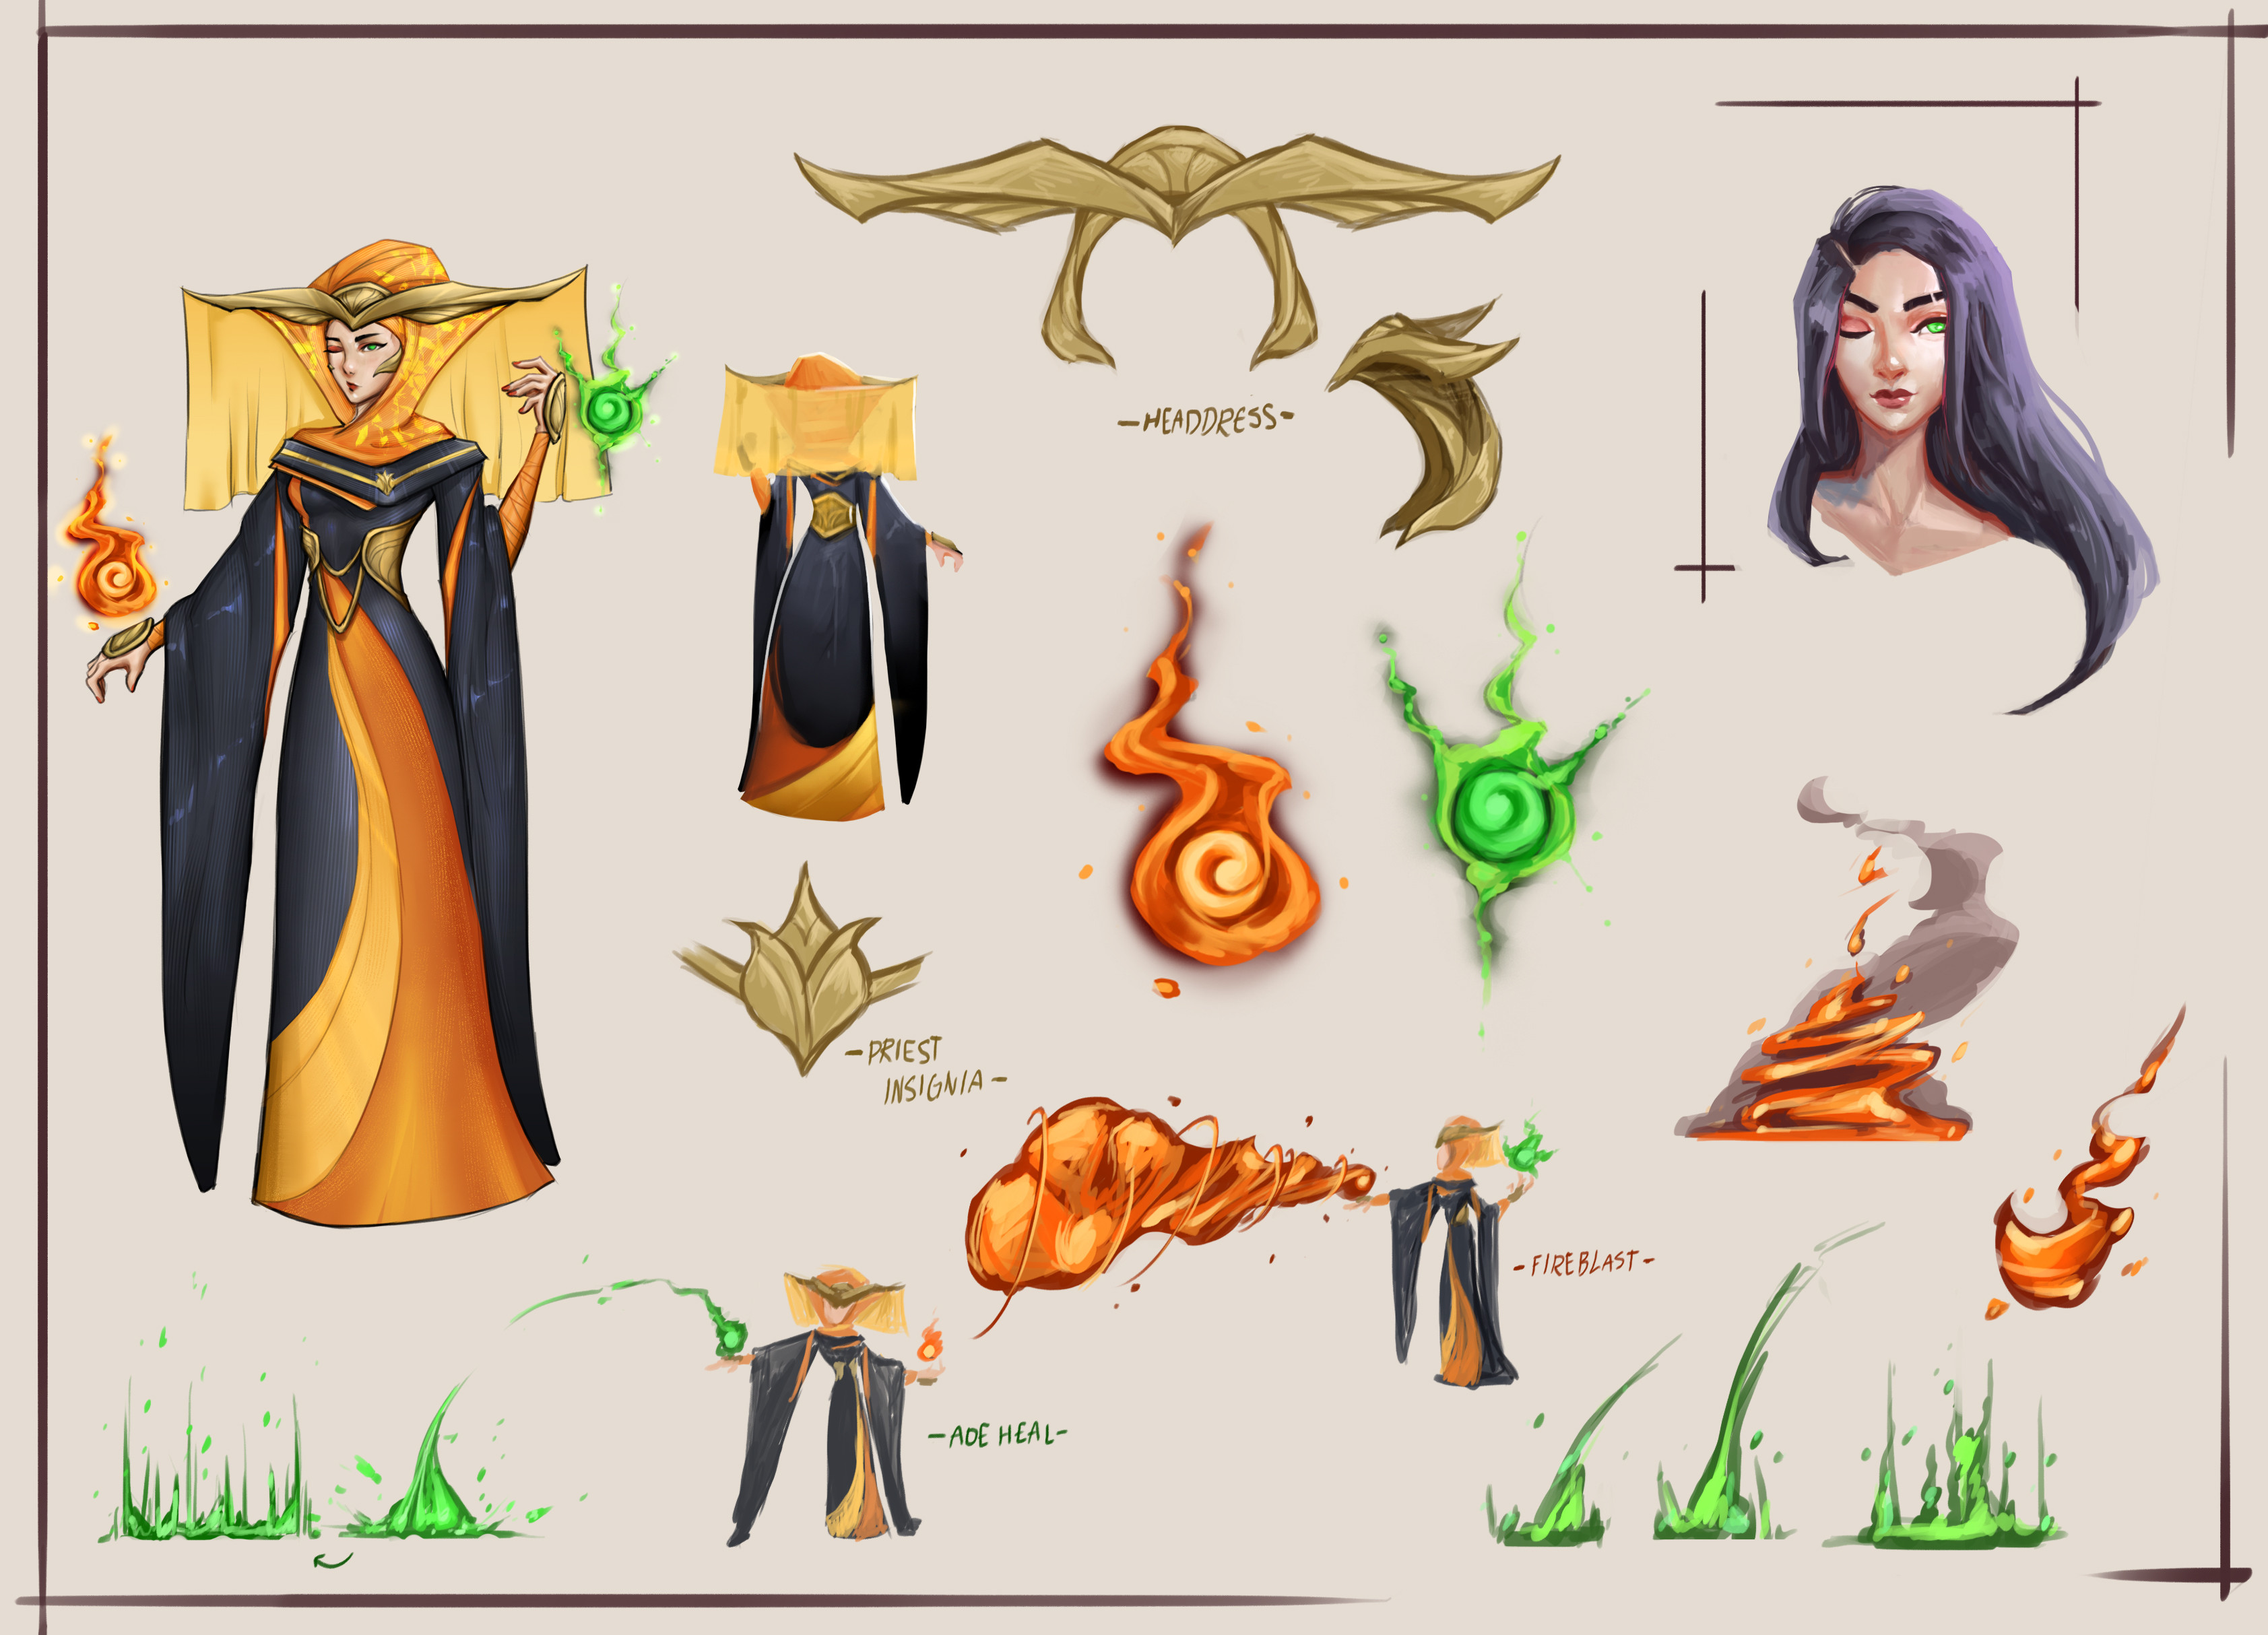 Invoker Araenia [2/3] Concept sheet complete with magic casting exploration, portrait with hair down, headdress, and back view!